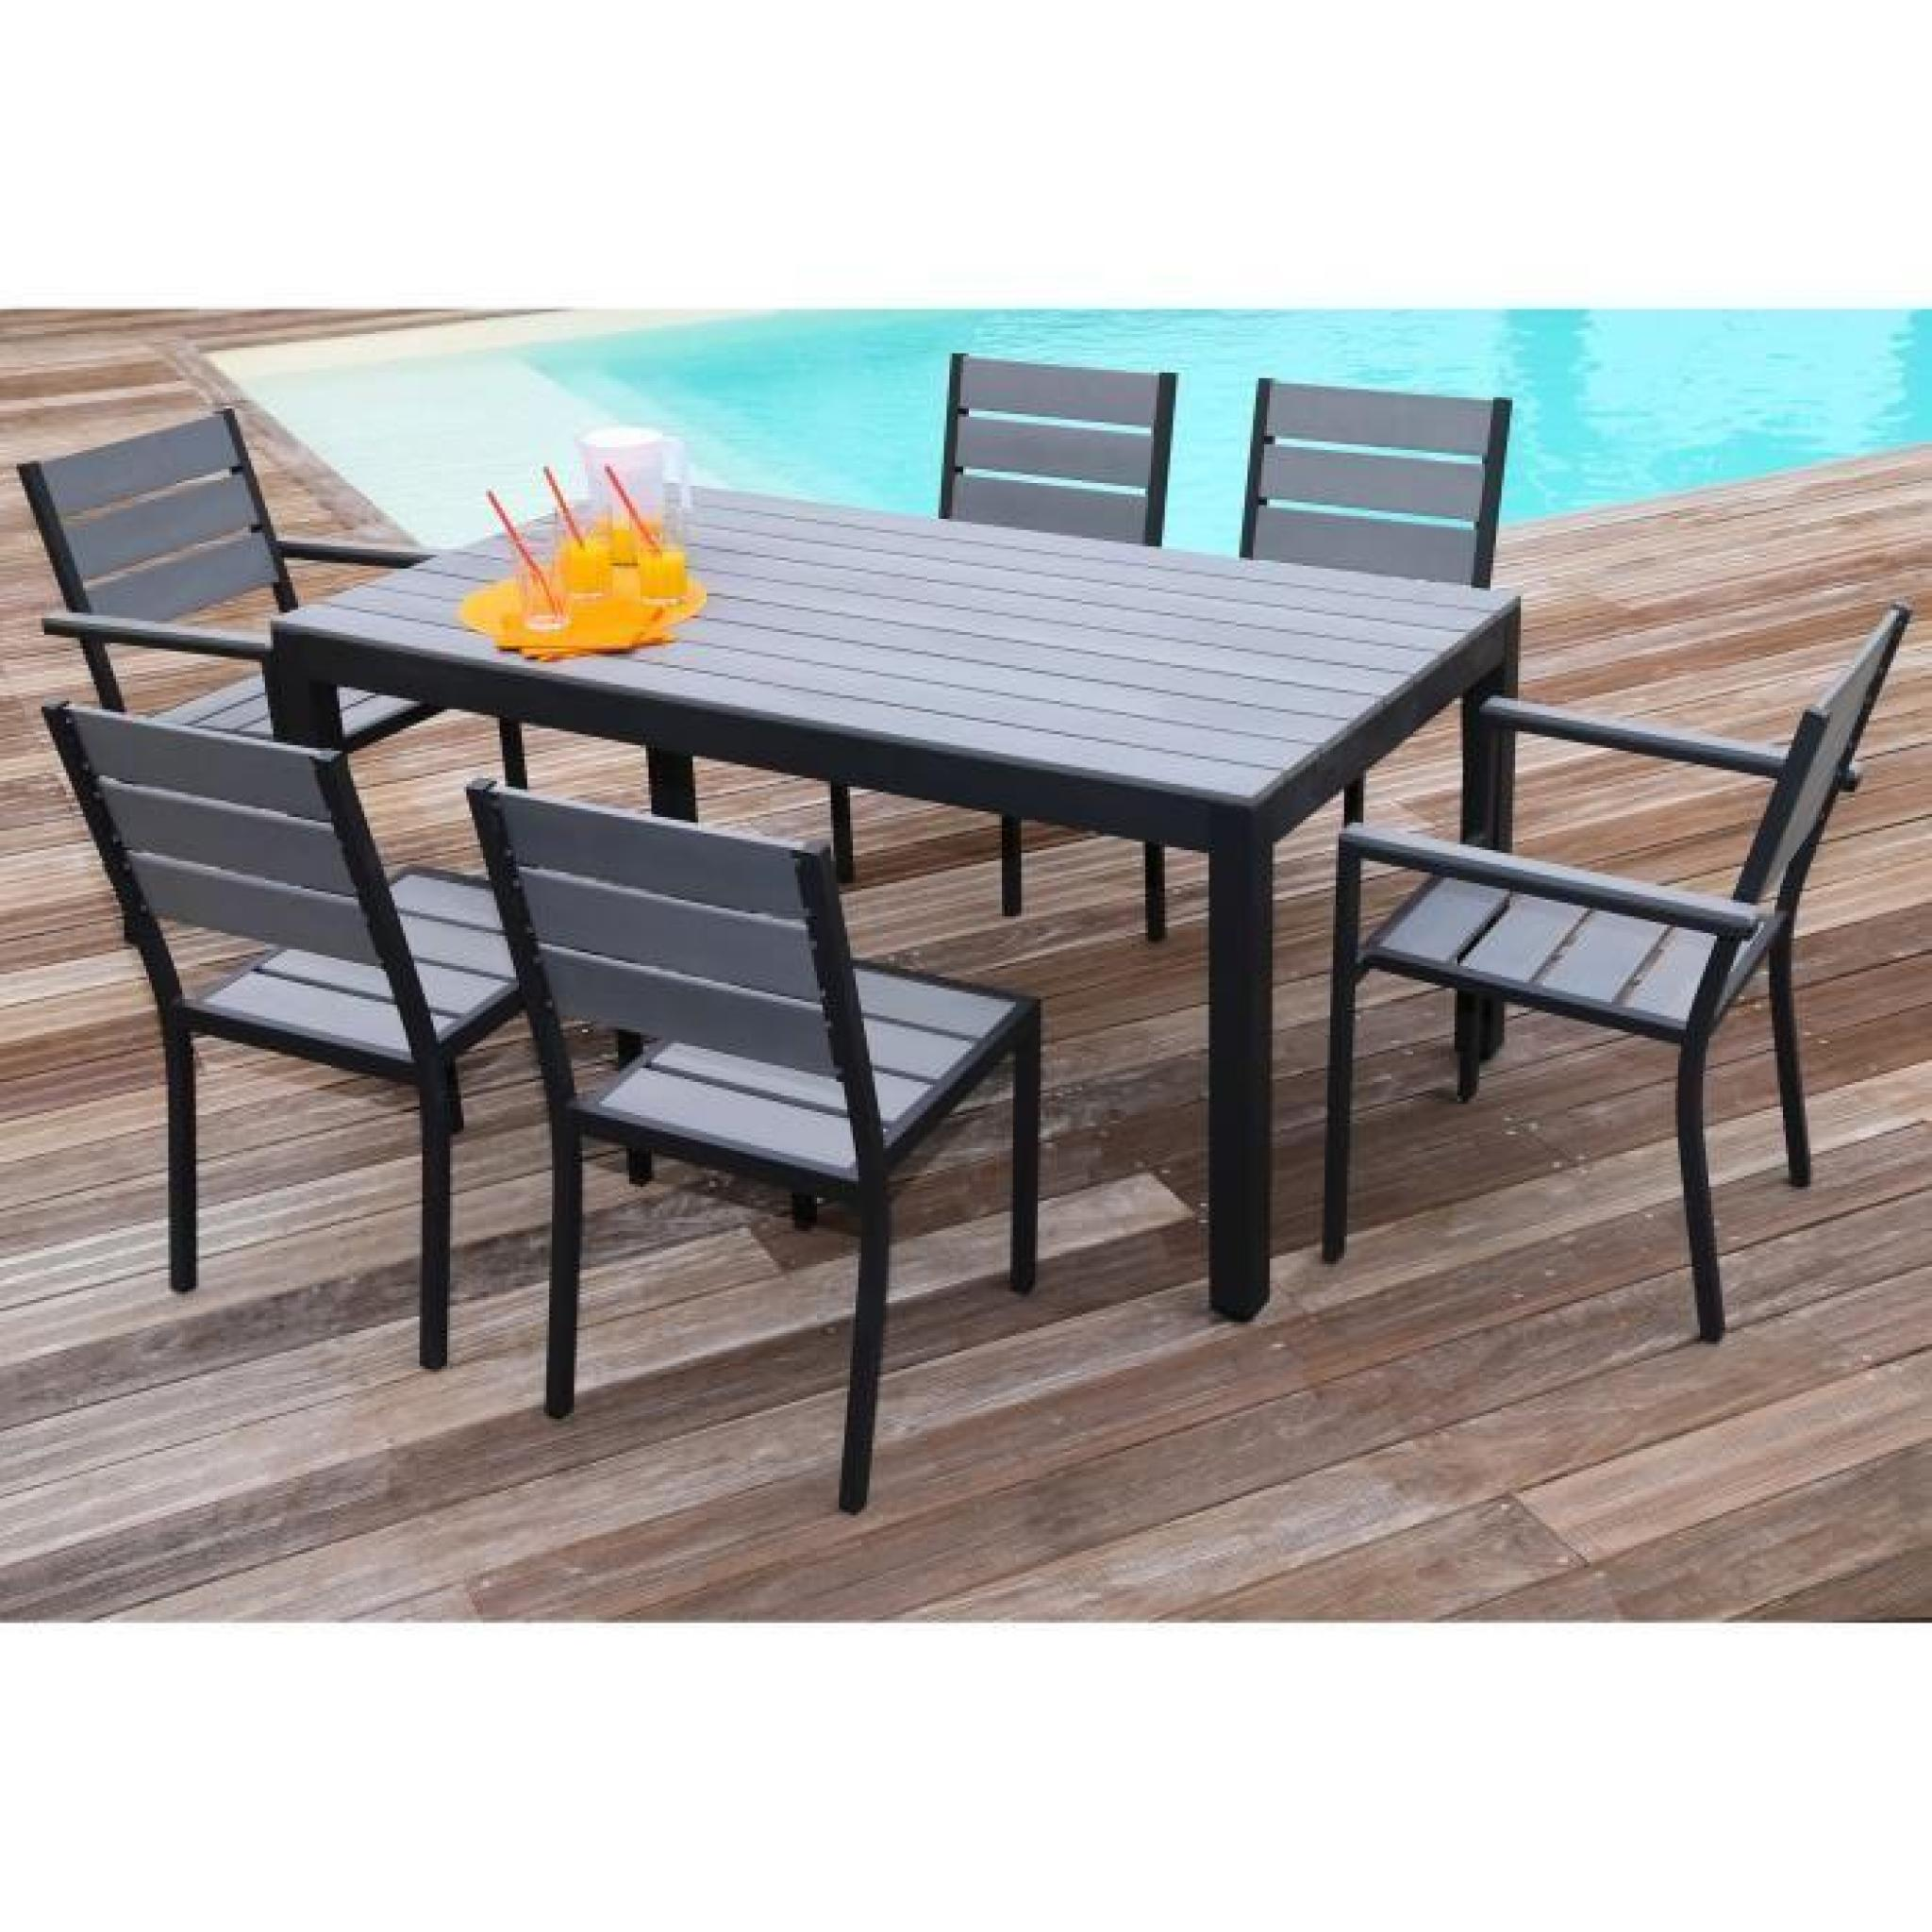 Ensemble Table Et Chaise De Jardin Floride Ensemble Table De Jardin 160 Cm 43 2 Fauteuils 43 4